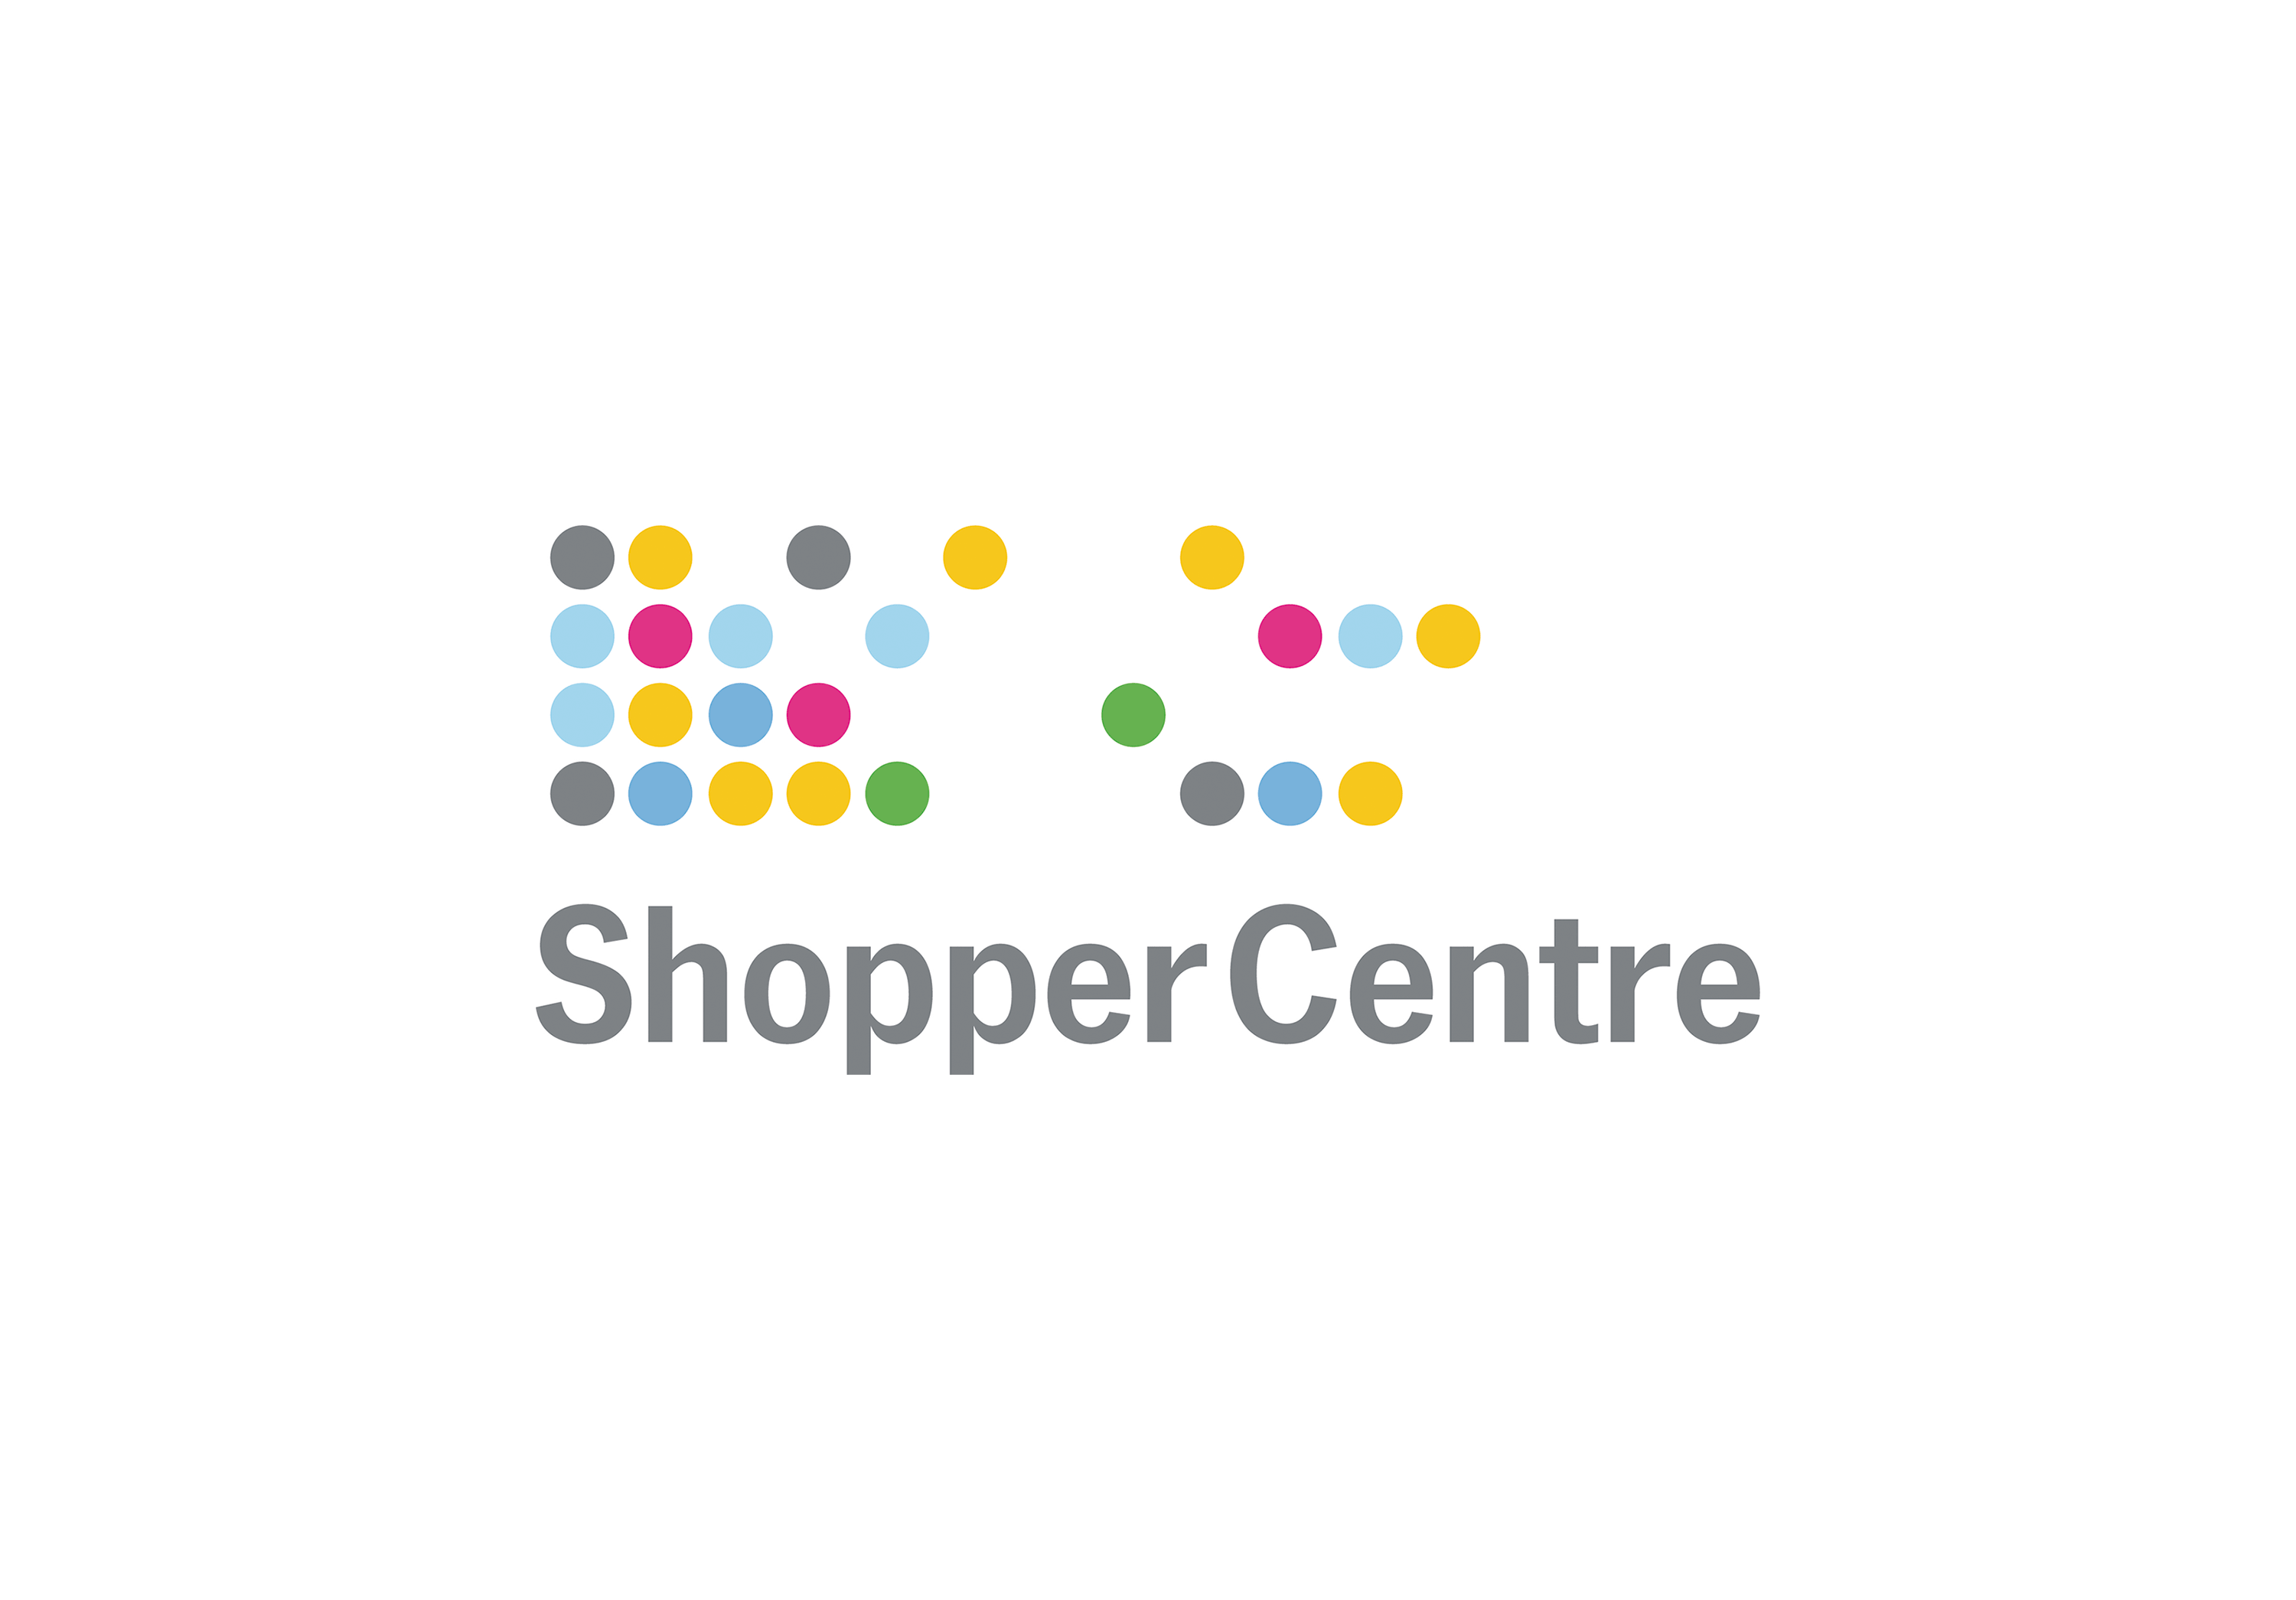 2019 –  Shopper Centre: Brand identity